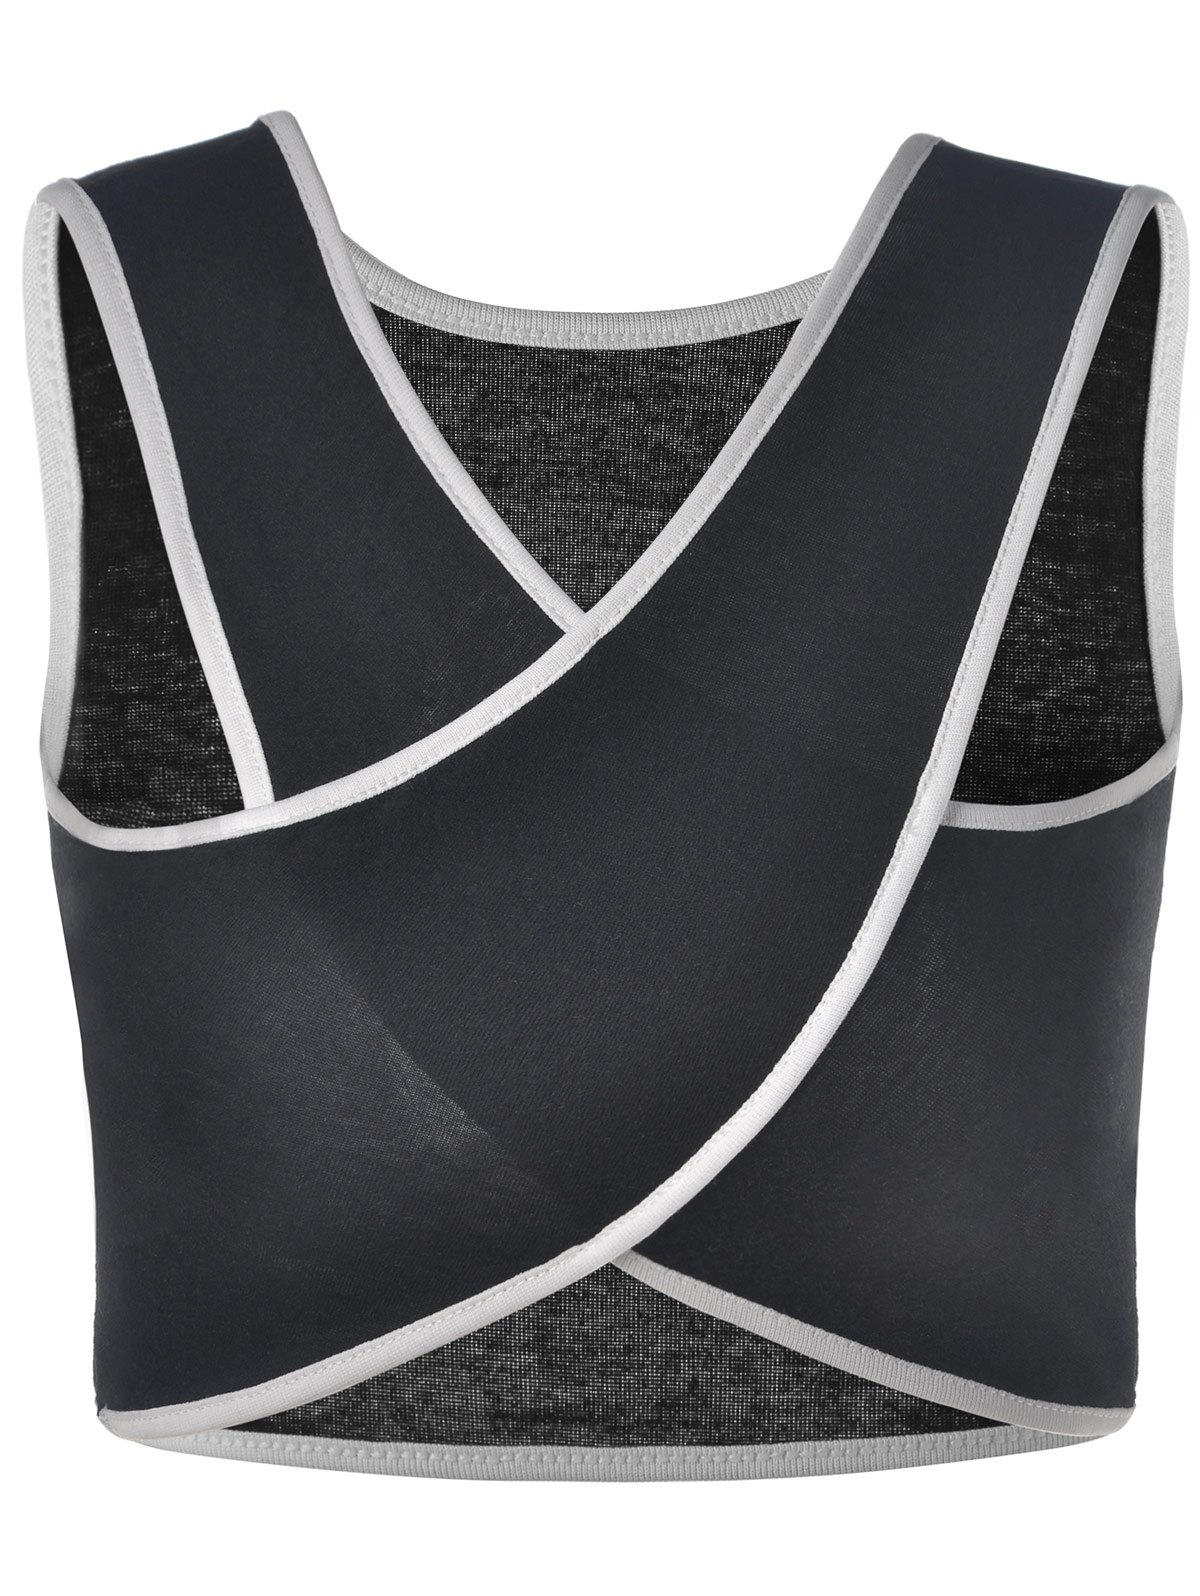 Casual Women's V-Neck Overlapping Sleeveless Crop Top - ONE SIZE(FIT SIZE XS TO M) BLACK